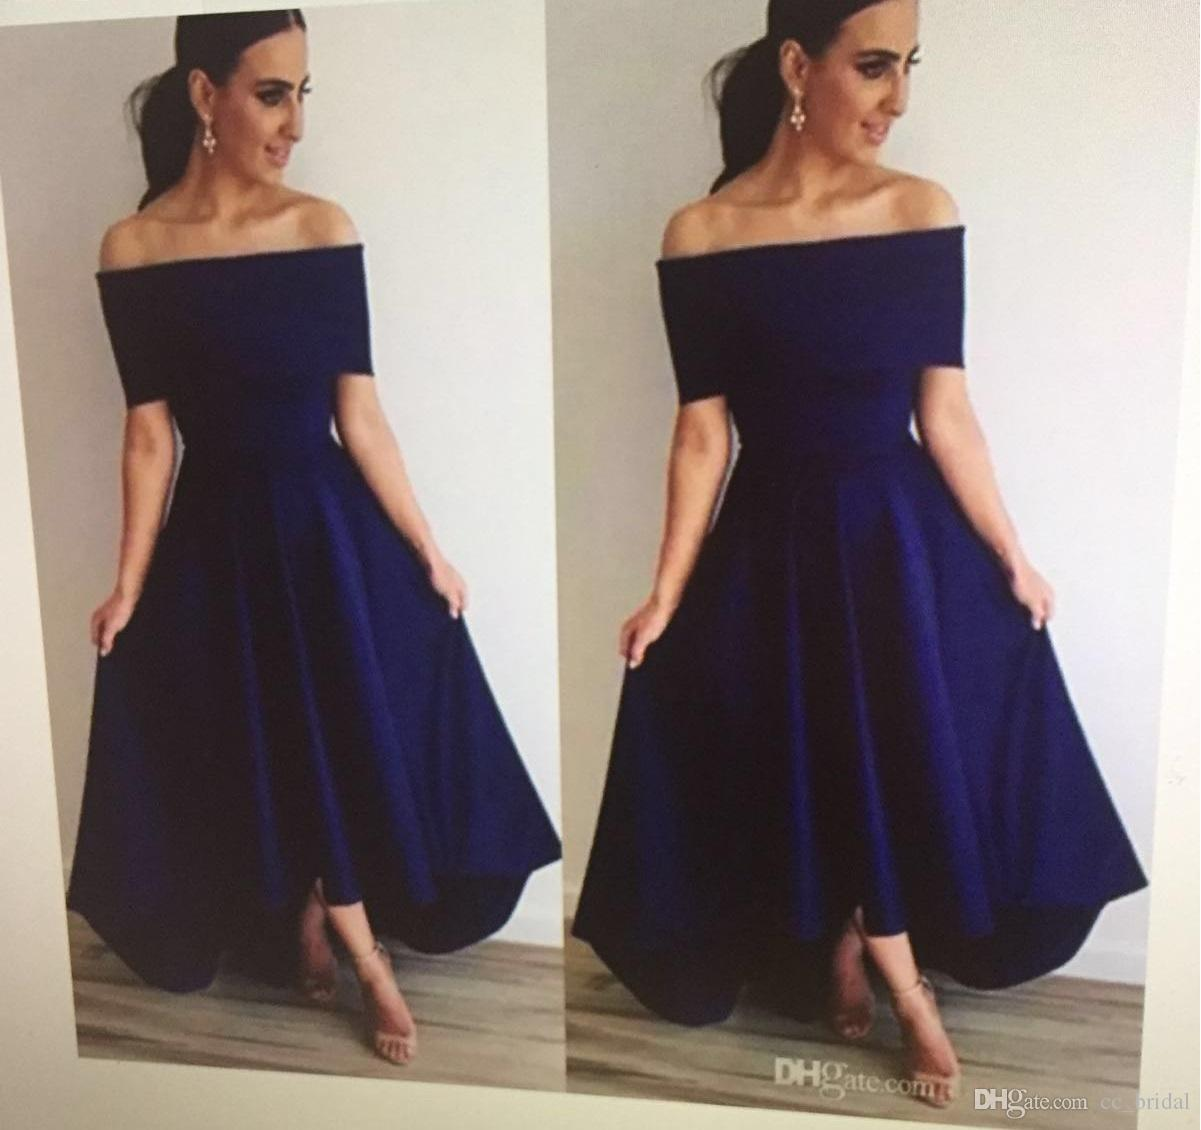 2594fcd513c3 Strapless Navy Blue Bridesmaid Dresses 2018 With Sexy Off Shoulder Maid Of  Honor Dress For Weddings Cheap Hi-low Dresses For Wedding Guest ,Long  Bridesmaid ...